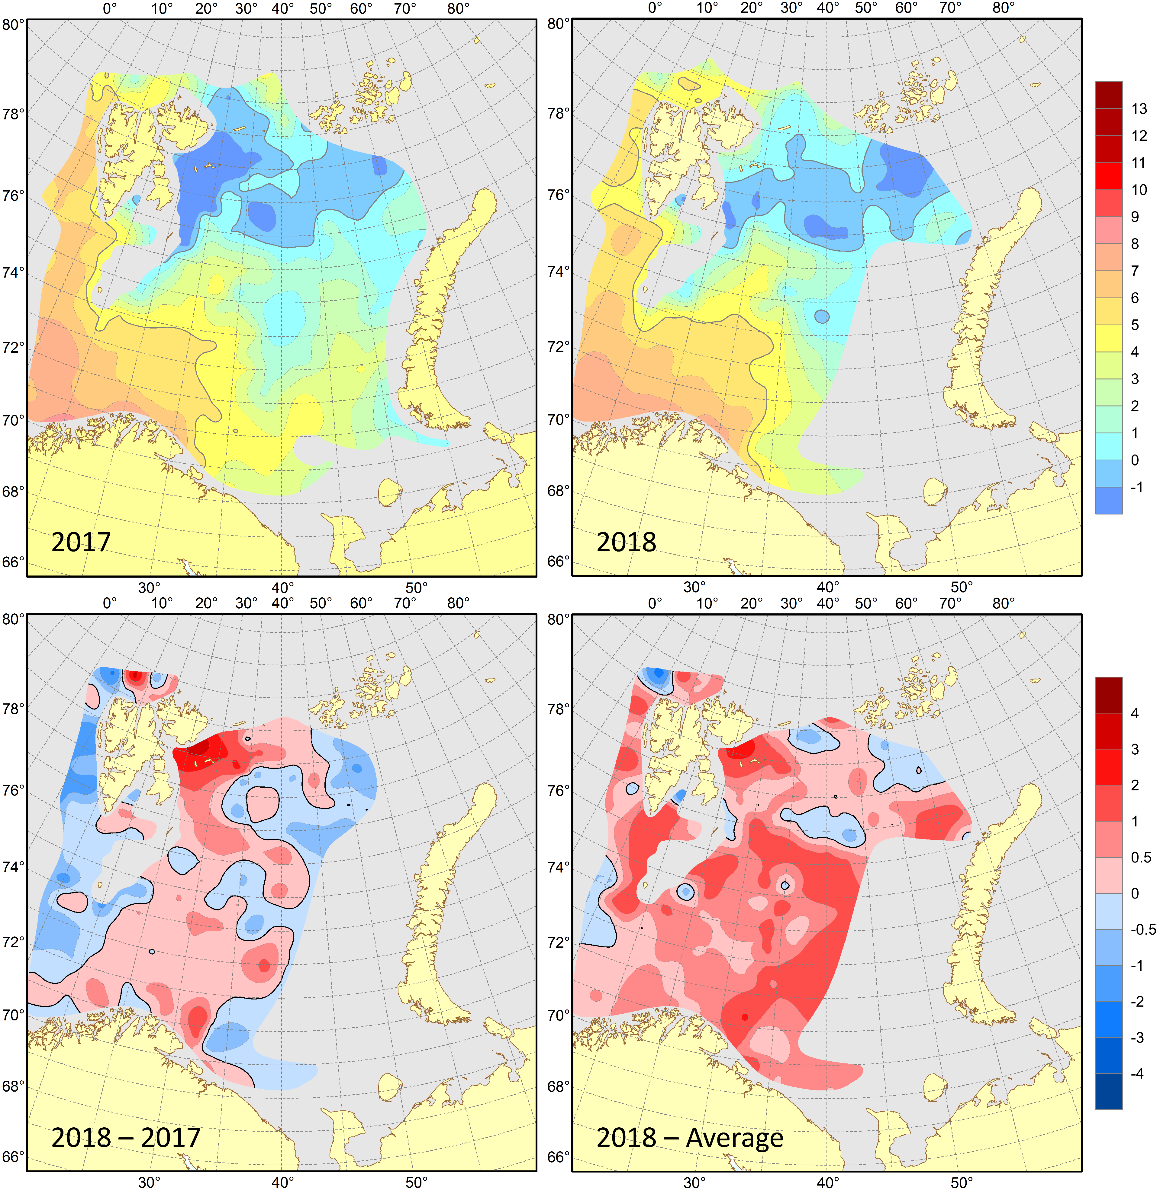 Figure 3.1.11. 100 m temperatures (°C) in August–September 2017 (upper left) and 2018 (upper right), their differences between 2018 and 2017 (lower left, °C) and anomalies in August–September 2018 (lower right, °C).